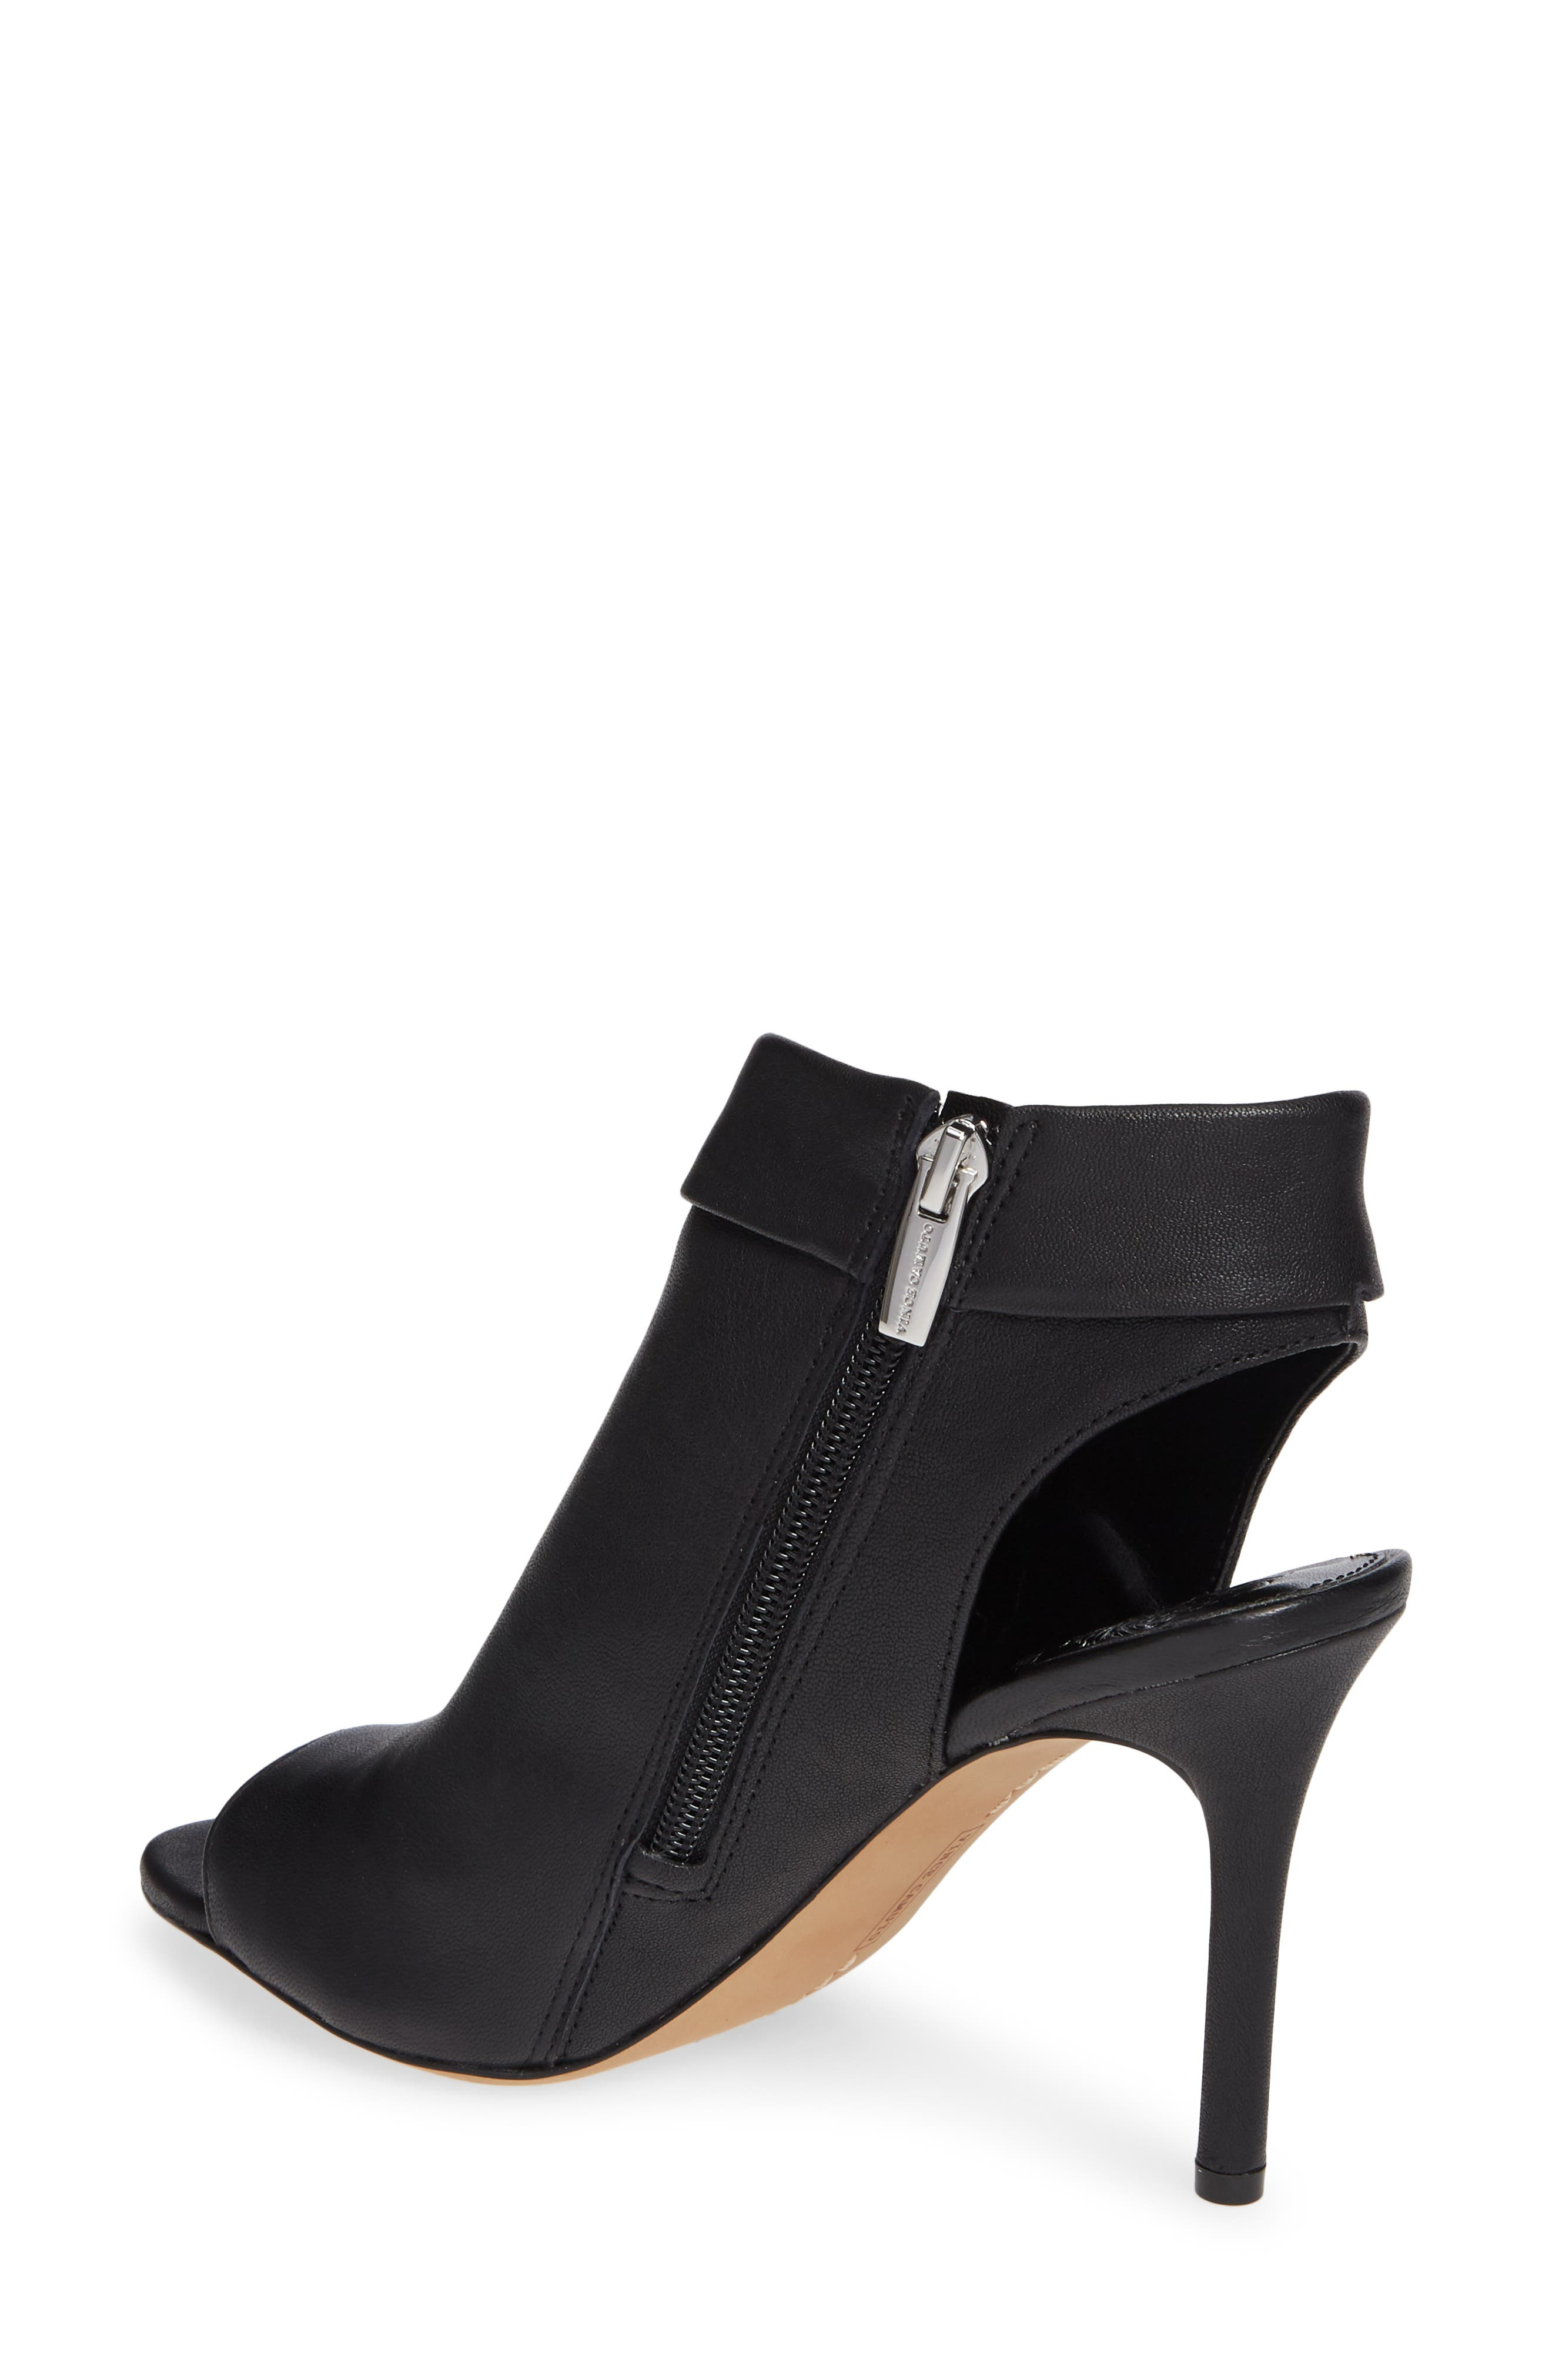 VINCE CAMUTO, Cholia Asymmetrical Sandal Bootie, Alternate thumbnail 2, color, BLACK LEATHER